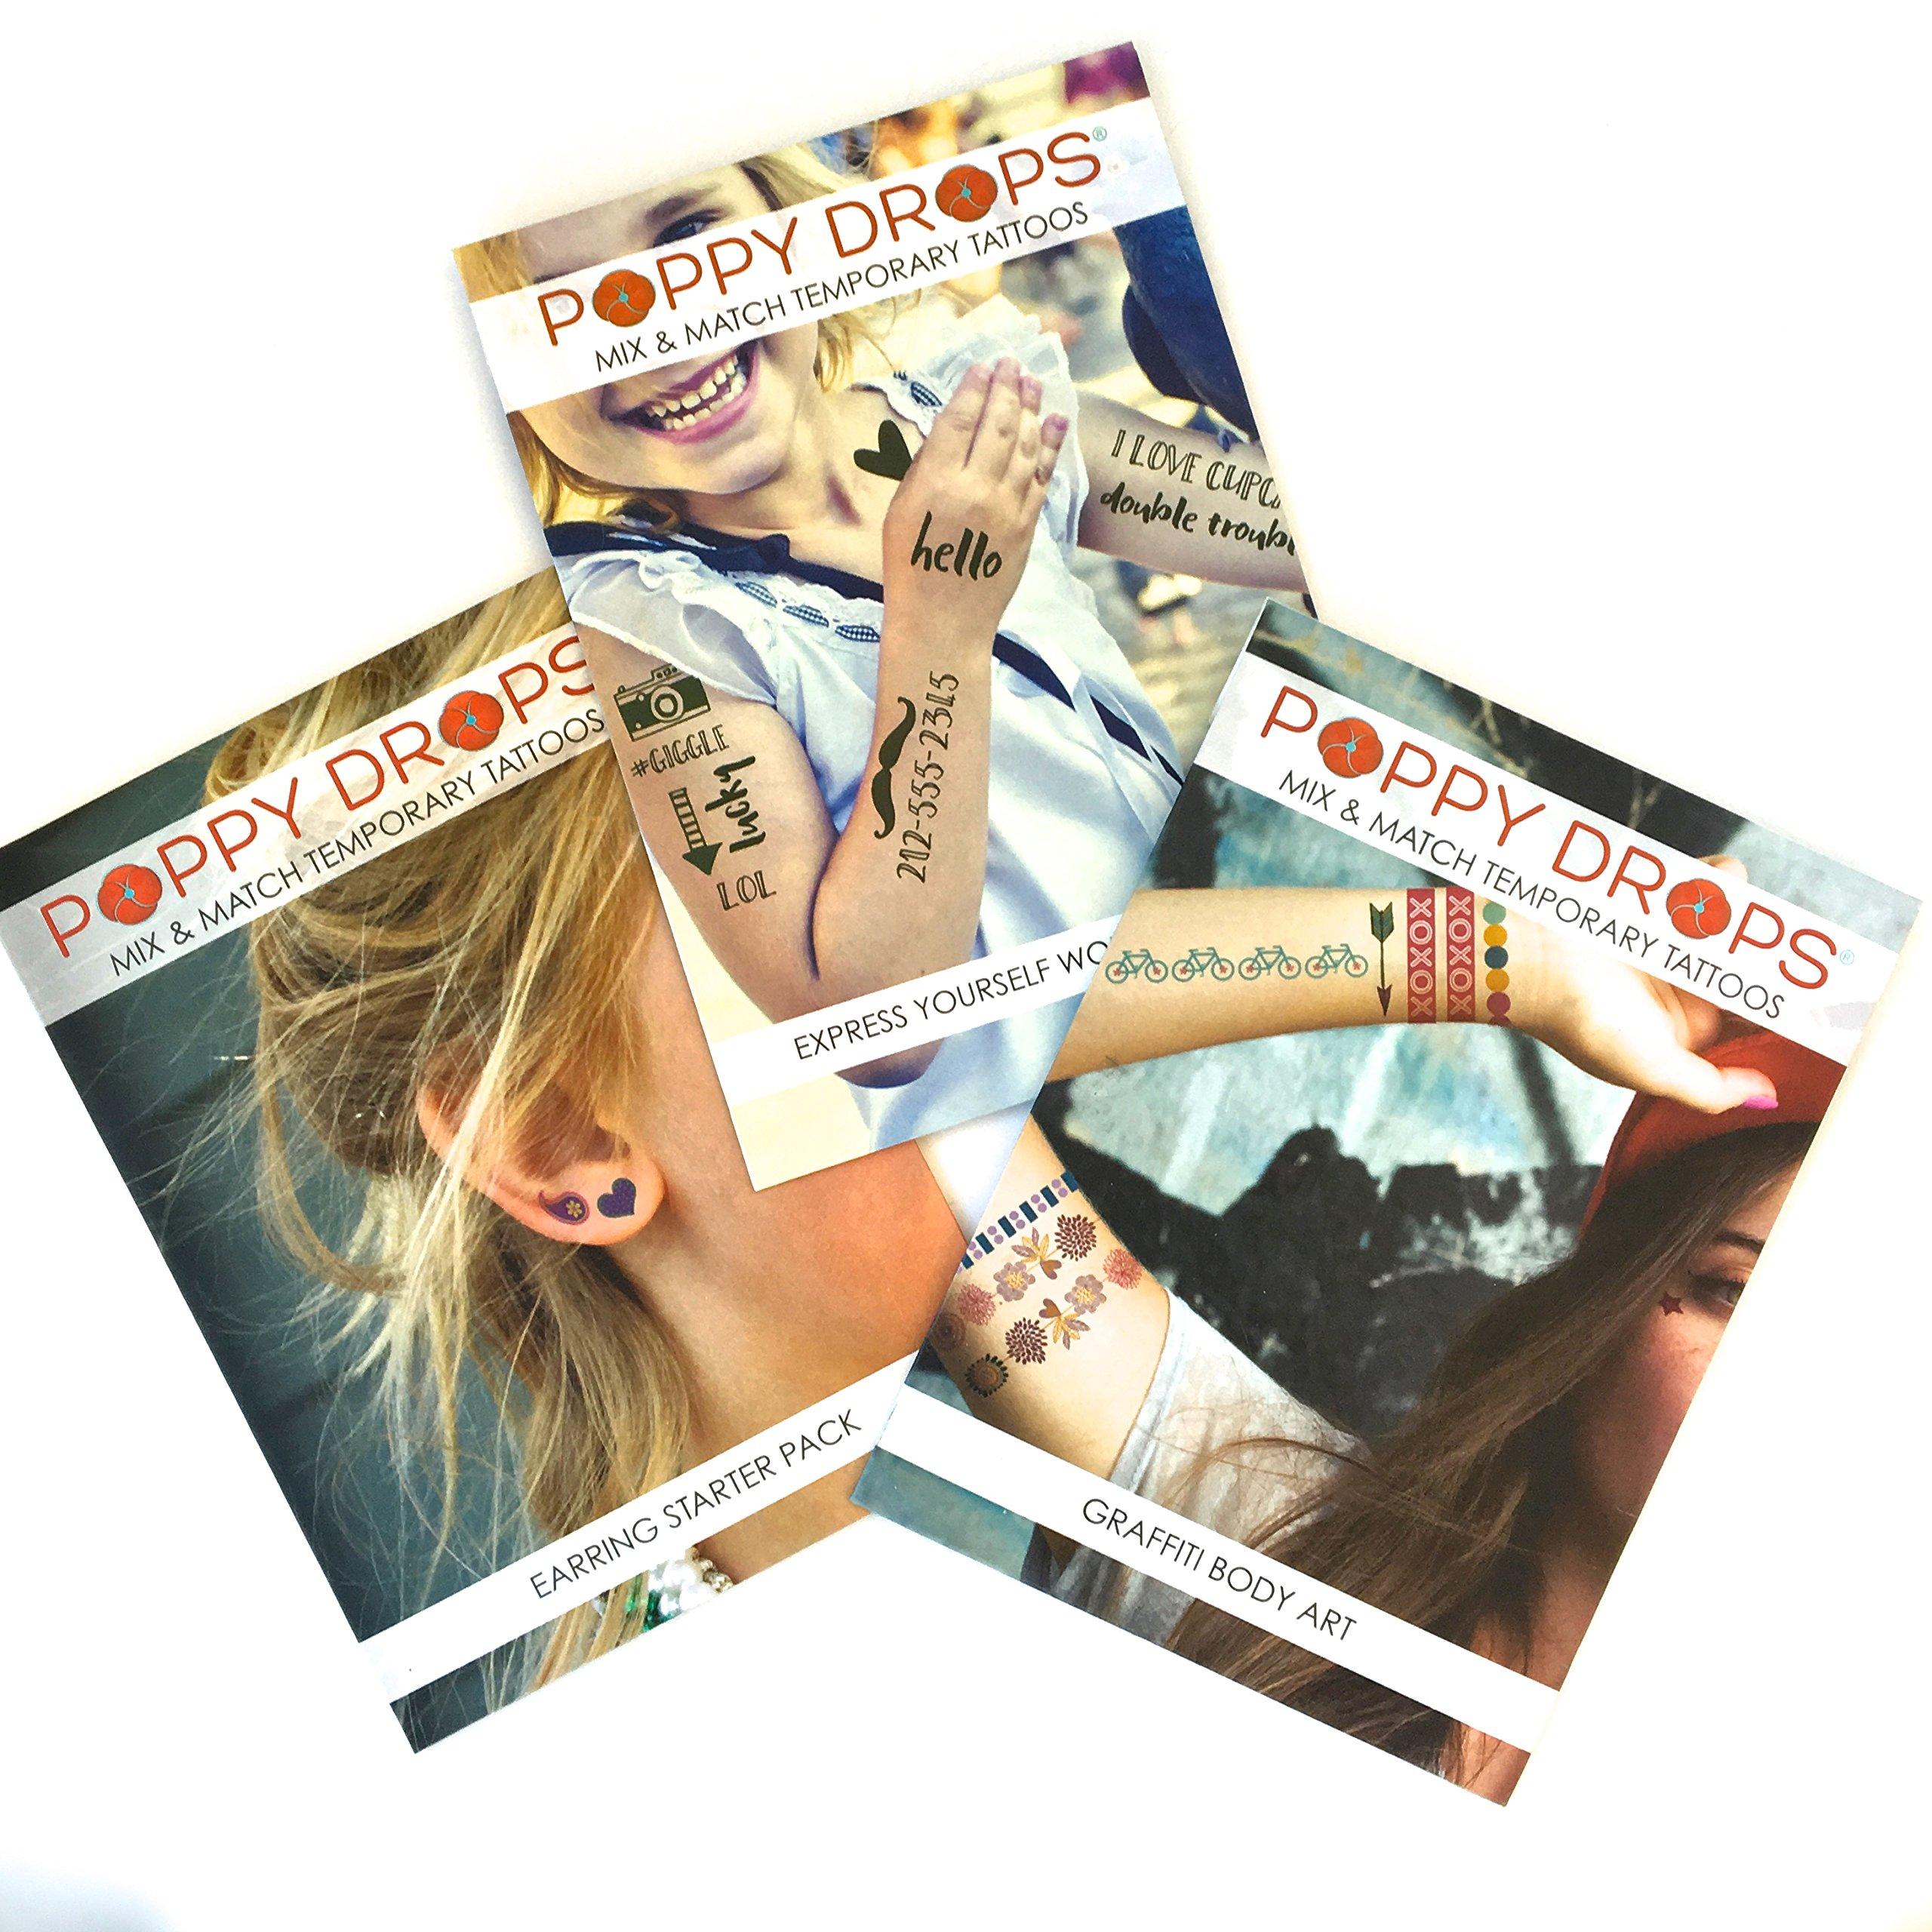 3 Pack Temporary Tattoo Packaged Sets - Express Yourself, Earring Starter & Graffitti Body Art Sets Included